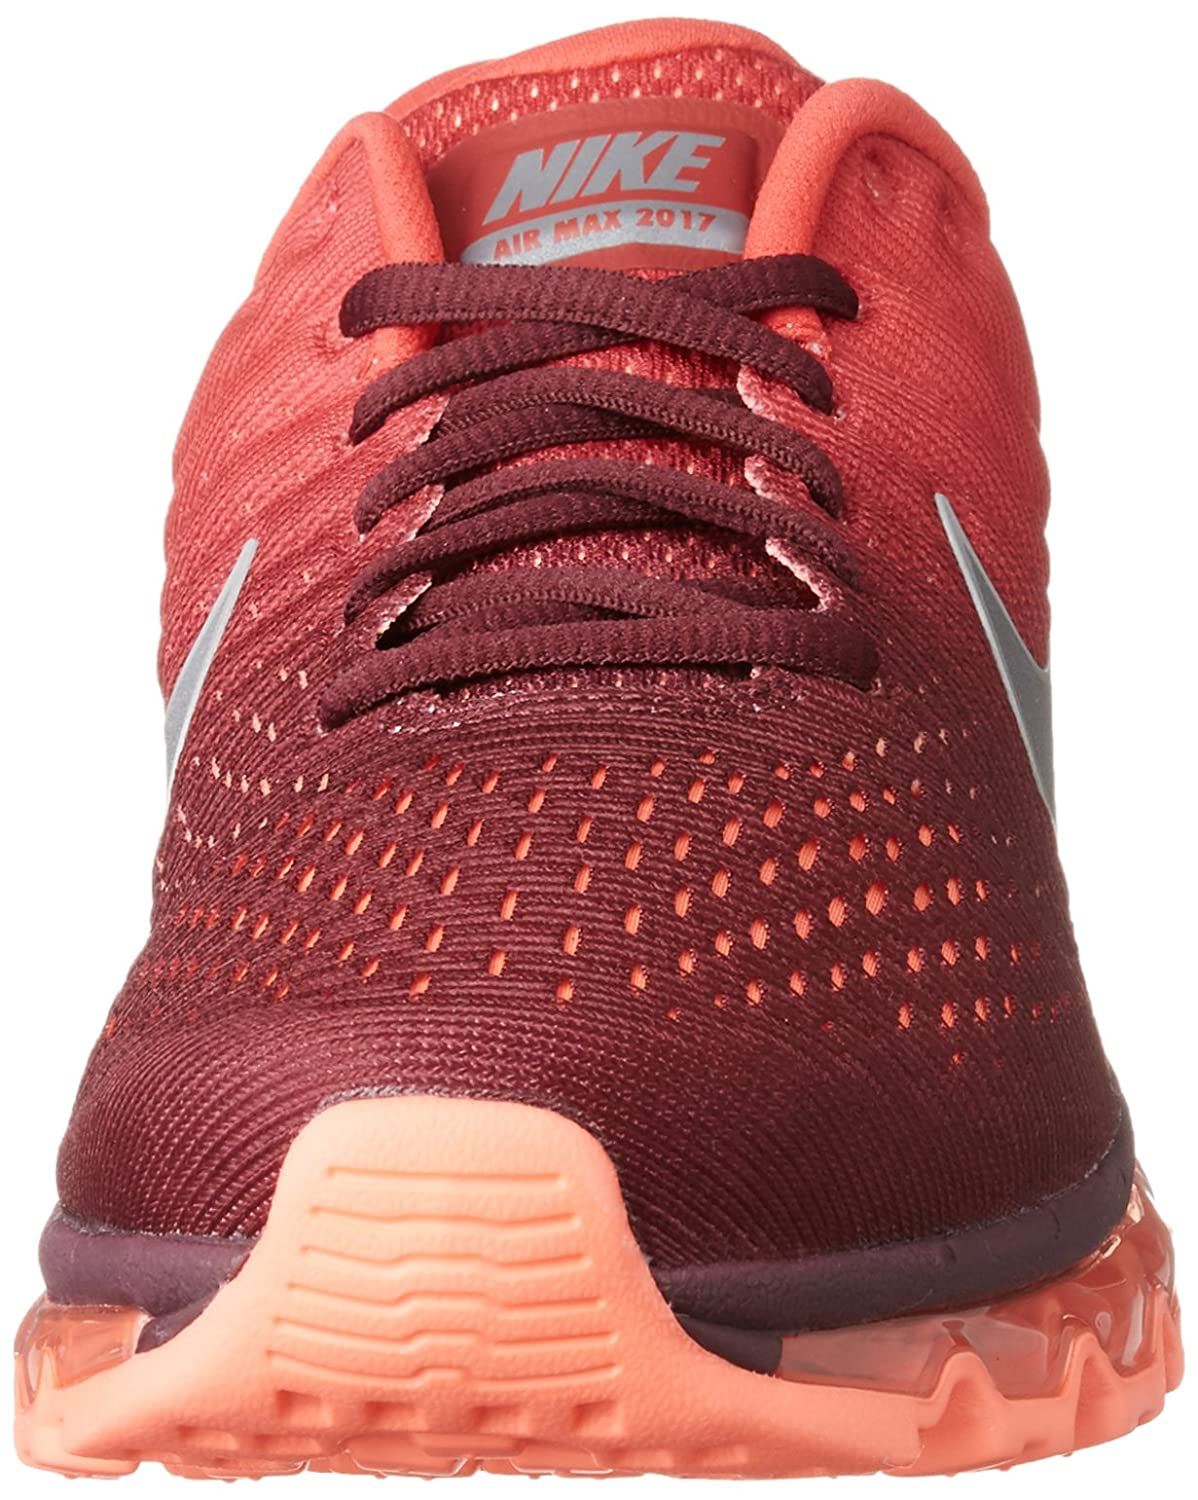 best loved 102c0 2a608 ... low price nike men s air running max 19952 2017 running shoe shoe  maroon white gym